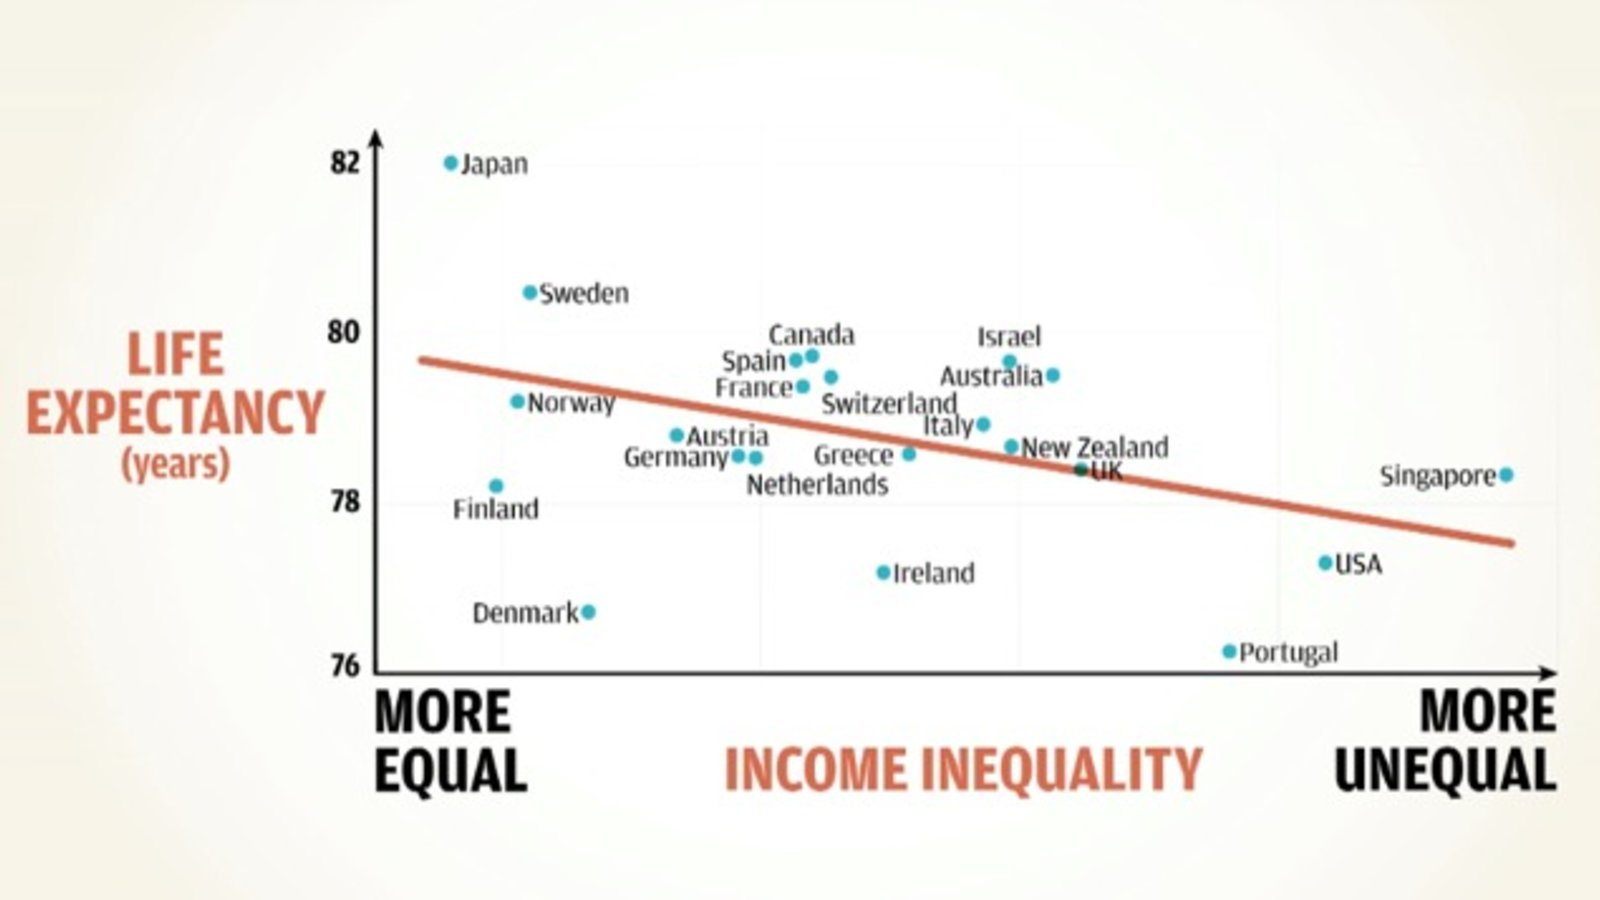 Dysfunctional Societies - How Equality Makes Societies Stronger